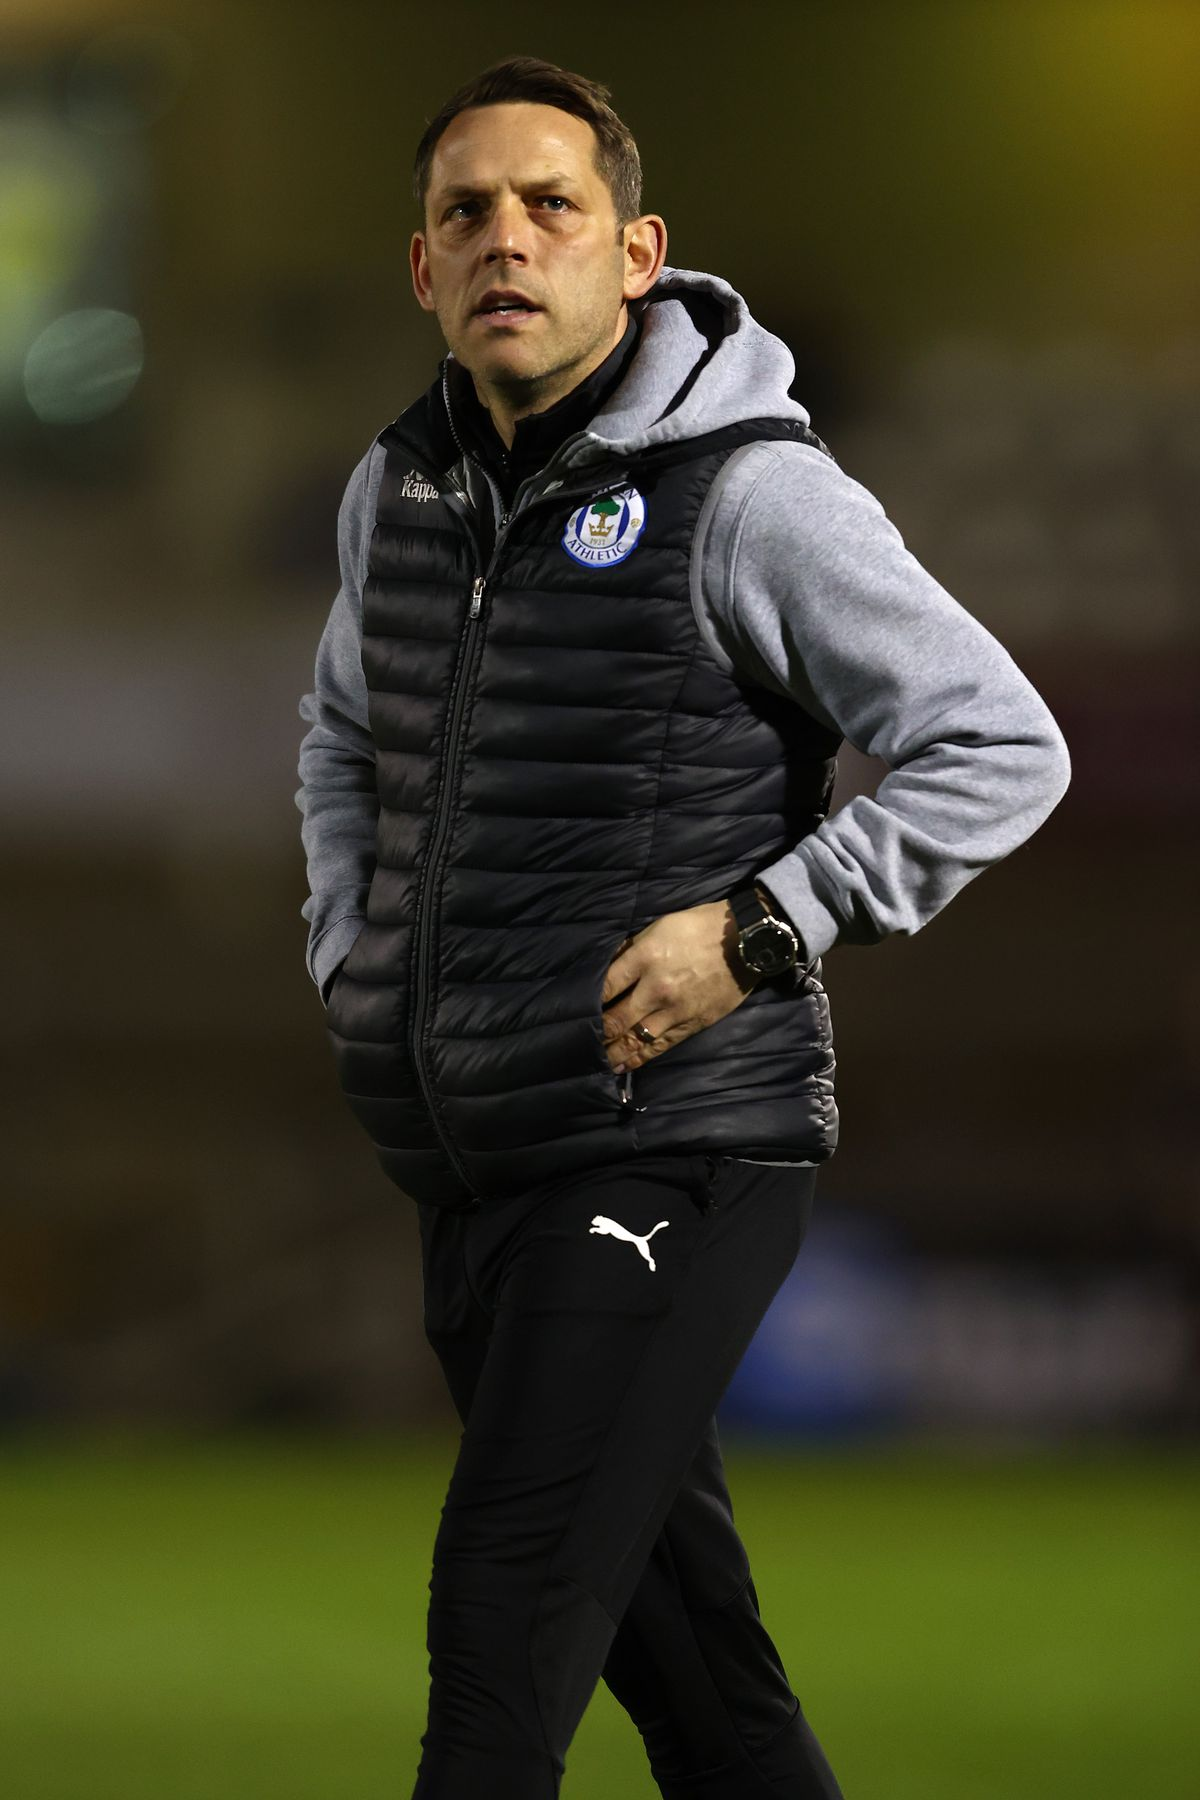 Bristol Rovers v Wigan Athletic - Sky Bet League One